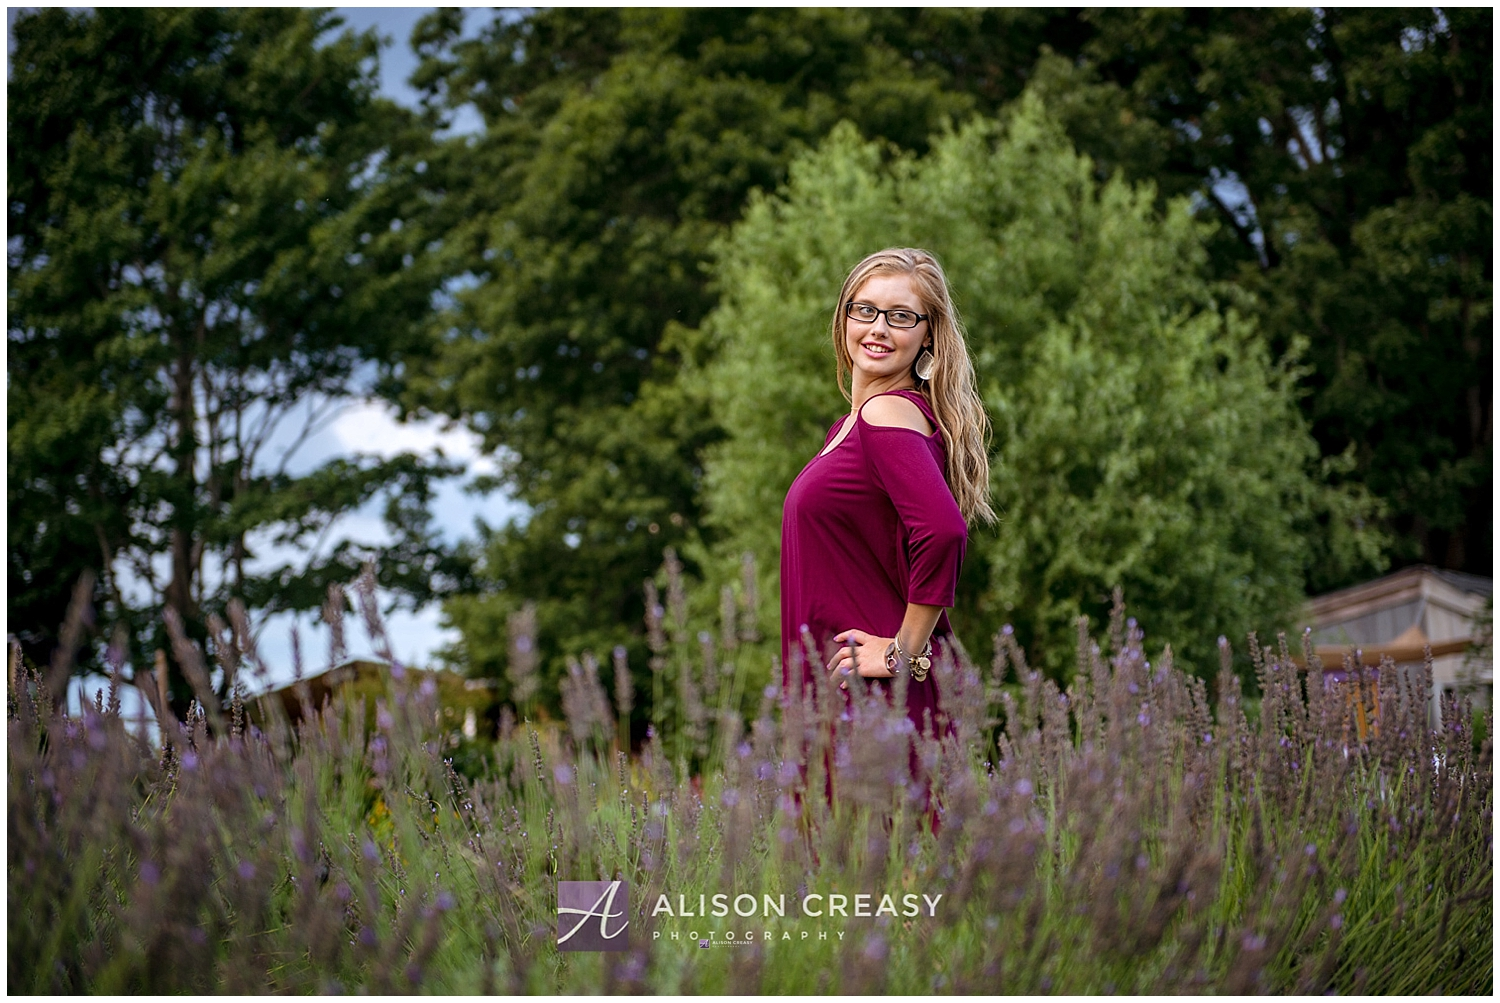 Alison-Creasy-Photography-Lynchburg-VA-Photographer_0724.jpg